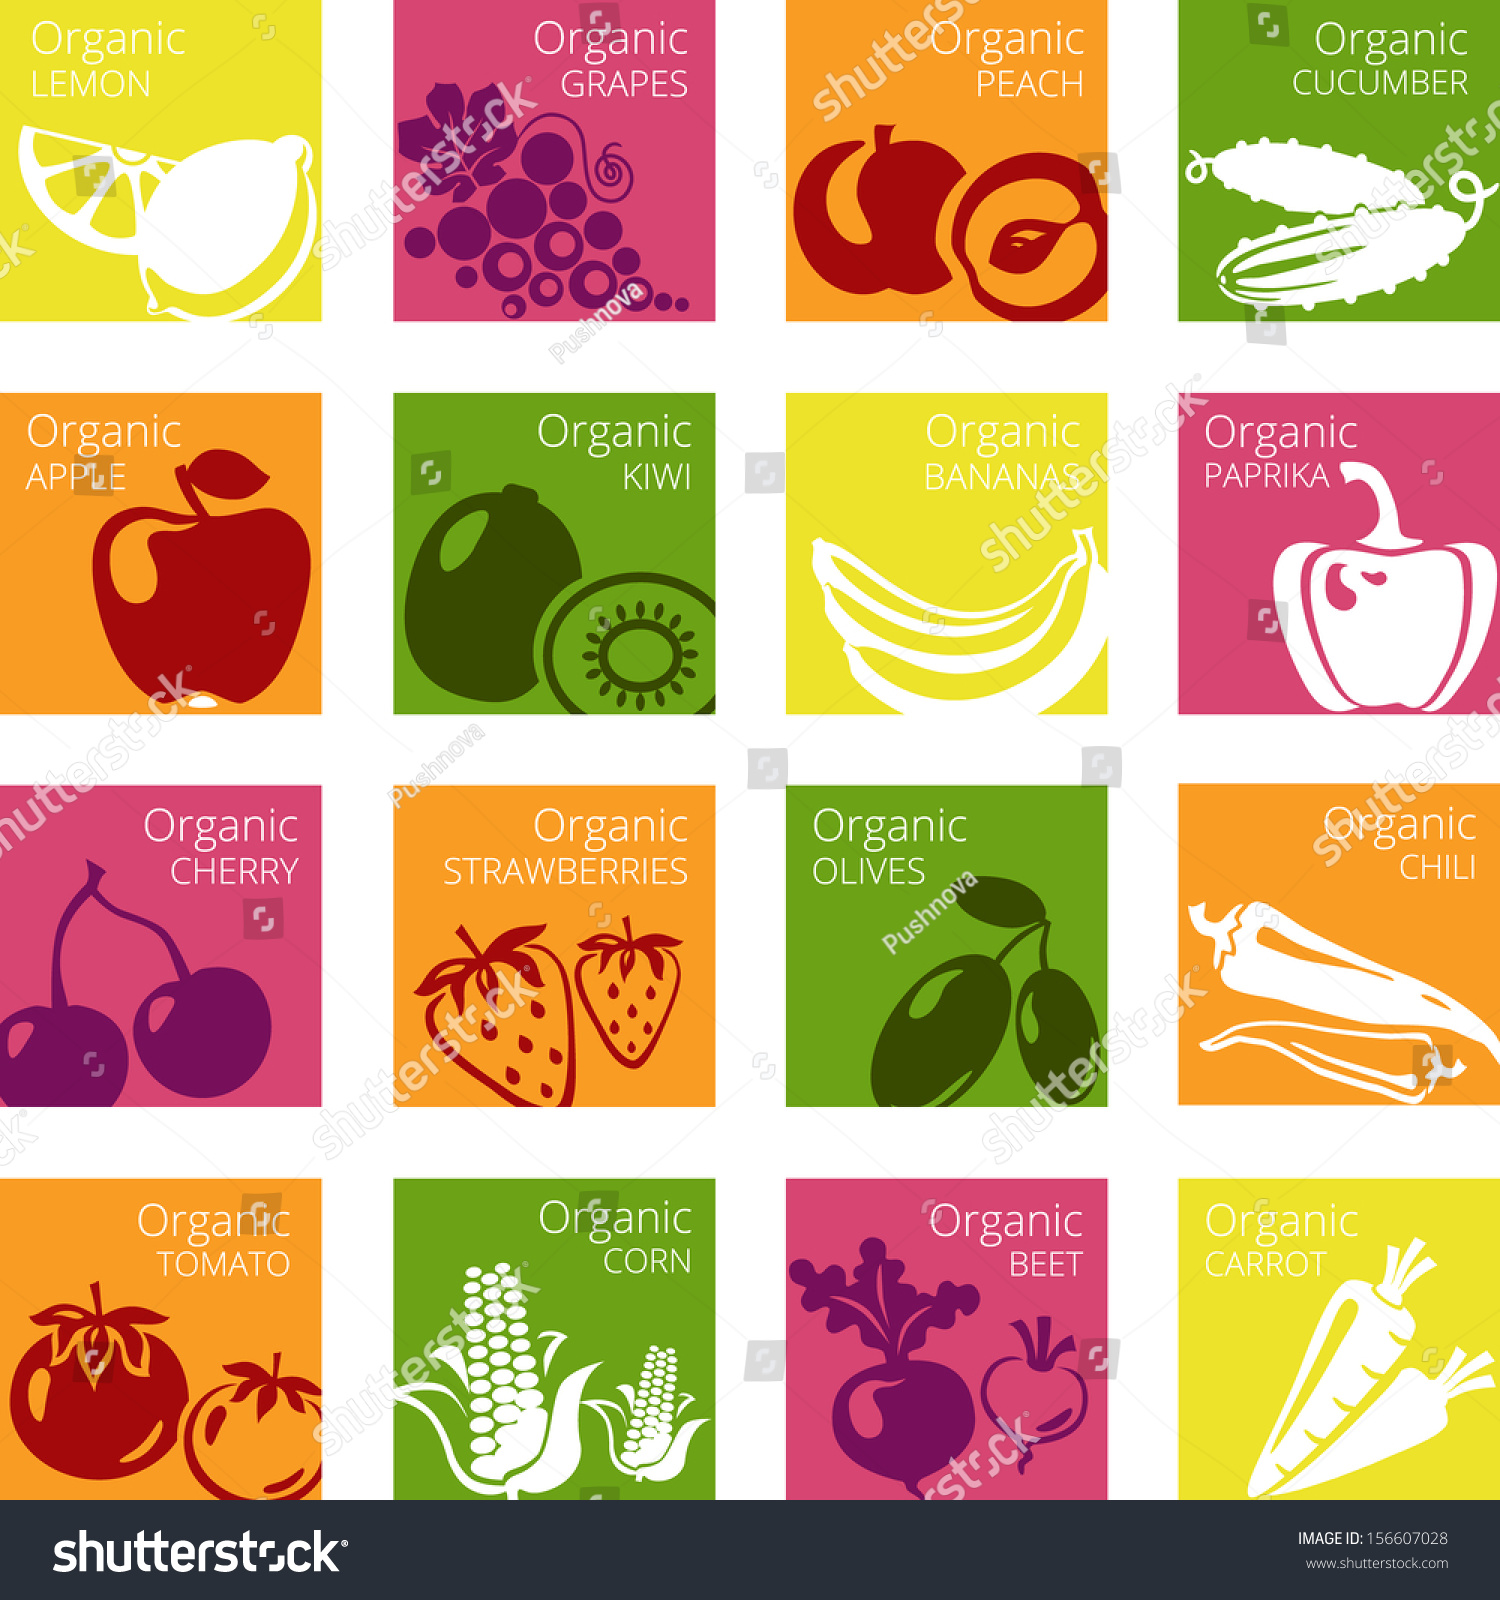 Vector Illustration Of Organic Fruits And Vegetables